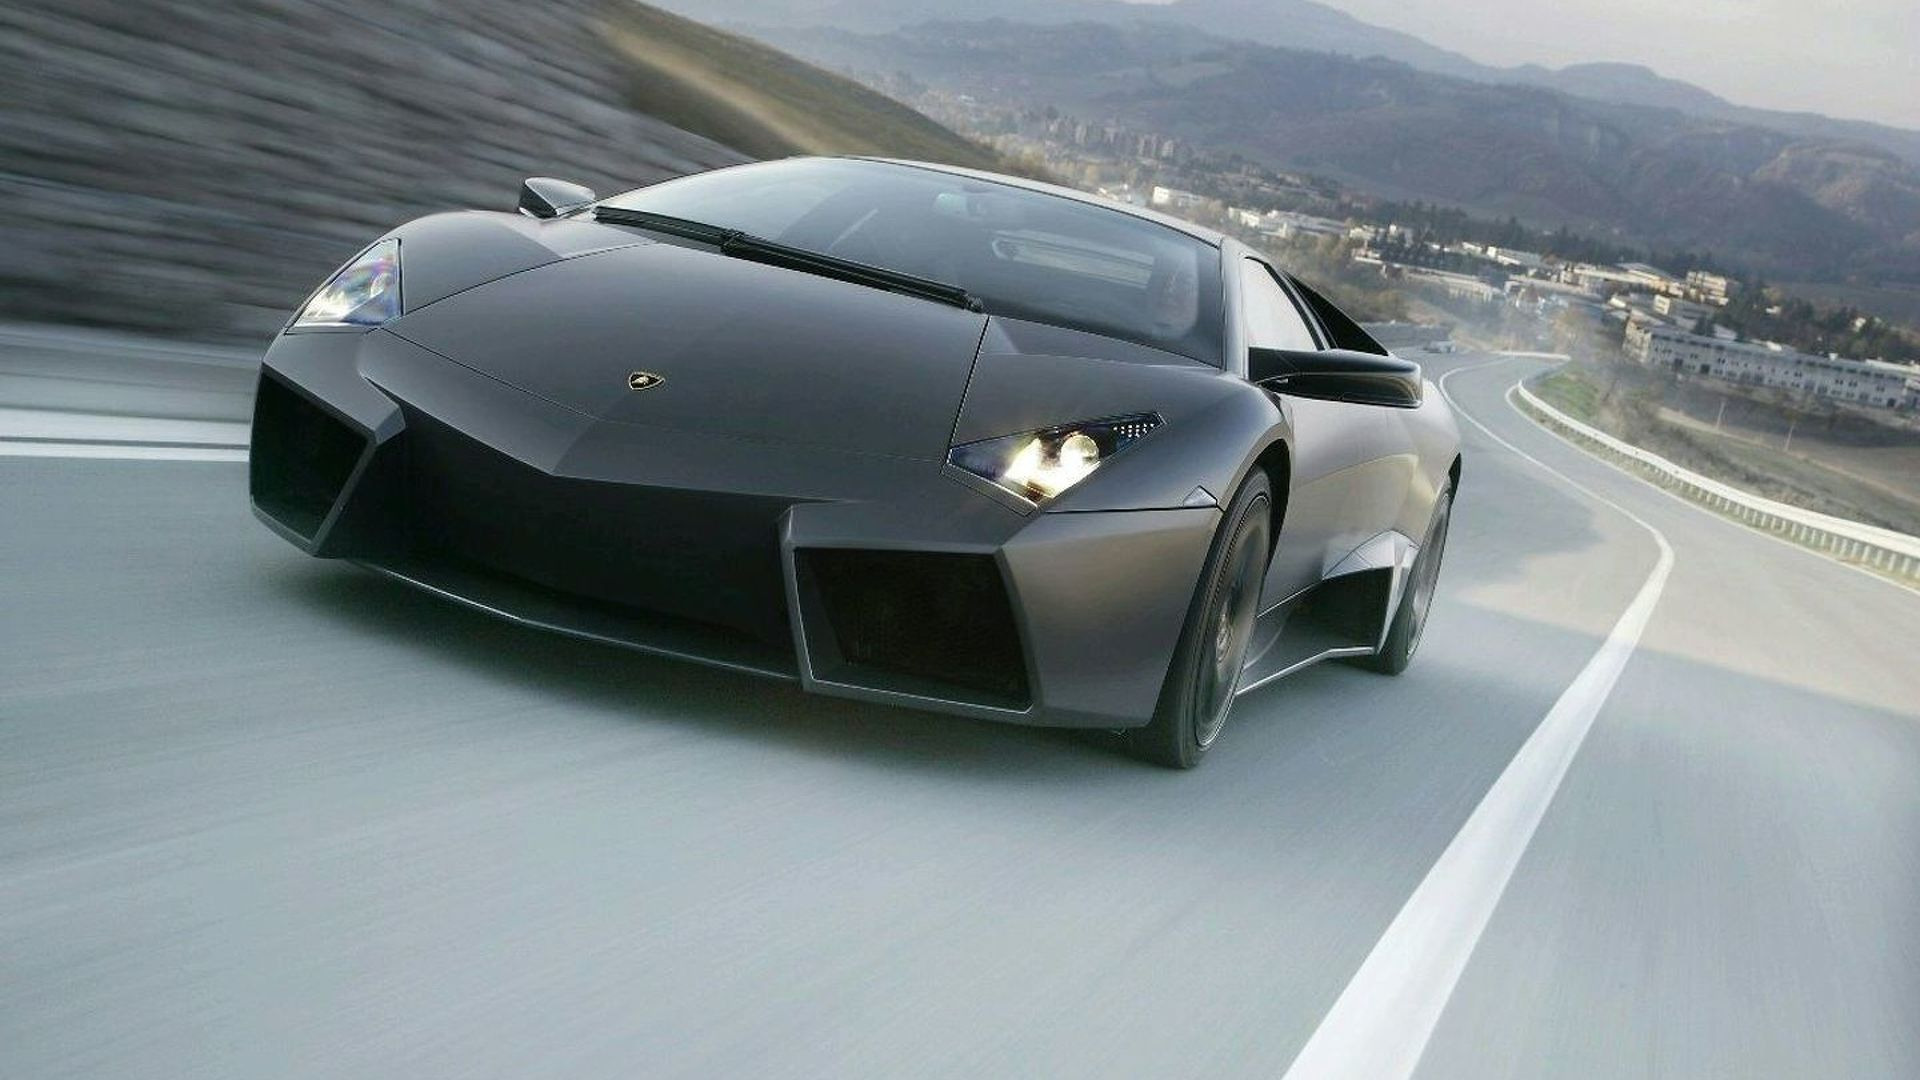 Rare 2008 Lamborghini Reventon Found On Sale